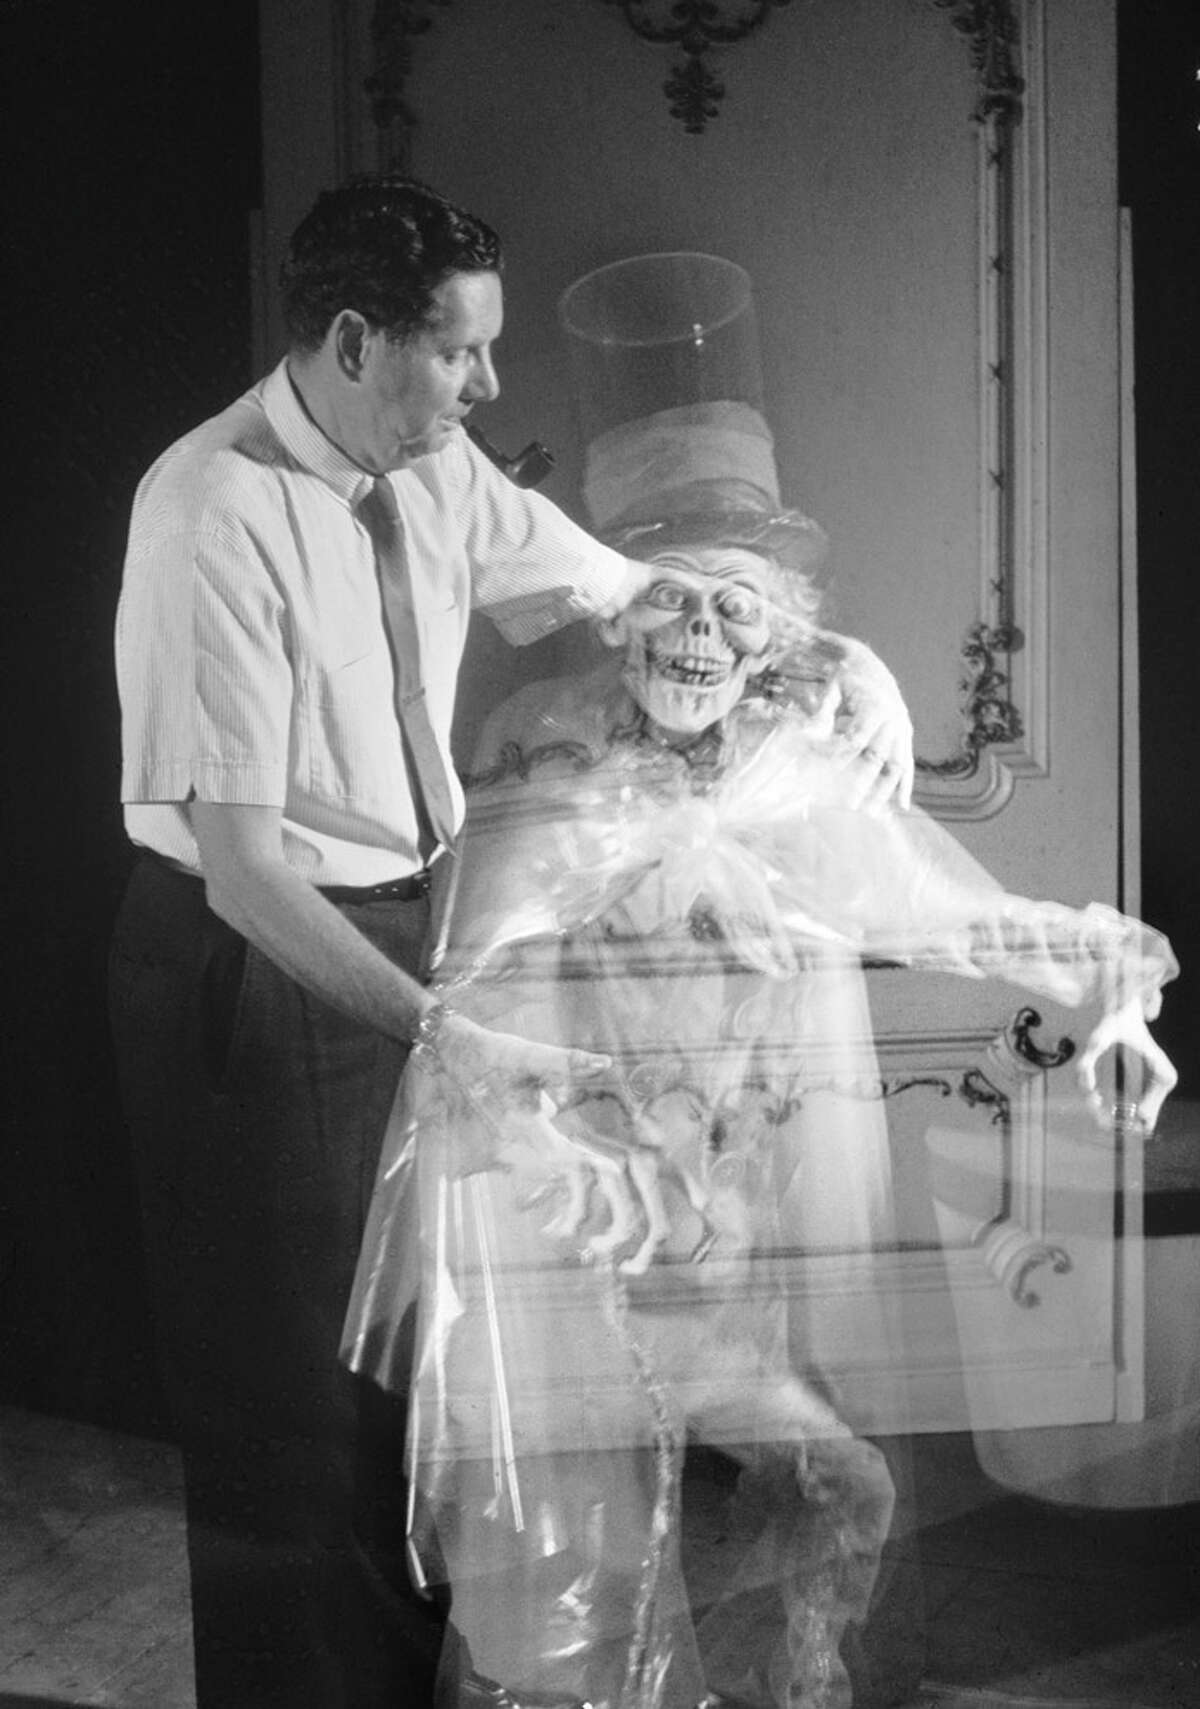 The Hatbox Ghost, pictured here with an Imagineer, originally occupied an attic scene with the bride. He was removed just a few days after opening, as Imagineers became convinced the scene just wasn't working. The ghost was reintroduced to the ride in 2015.